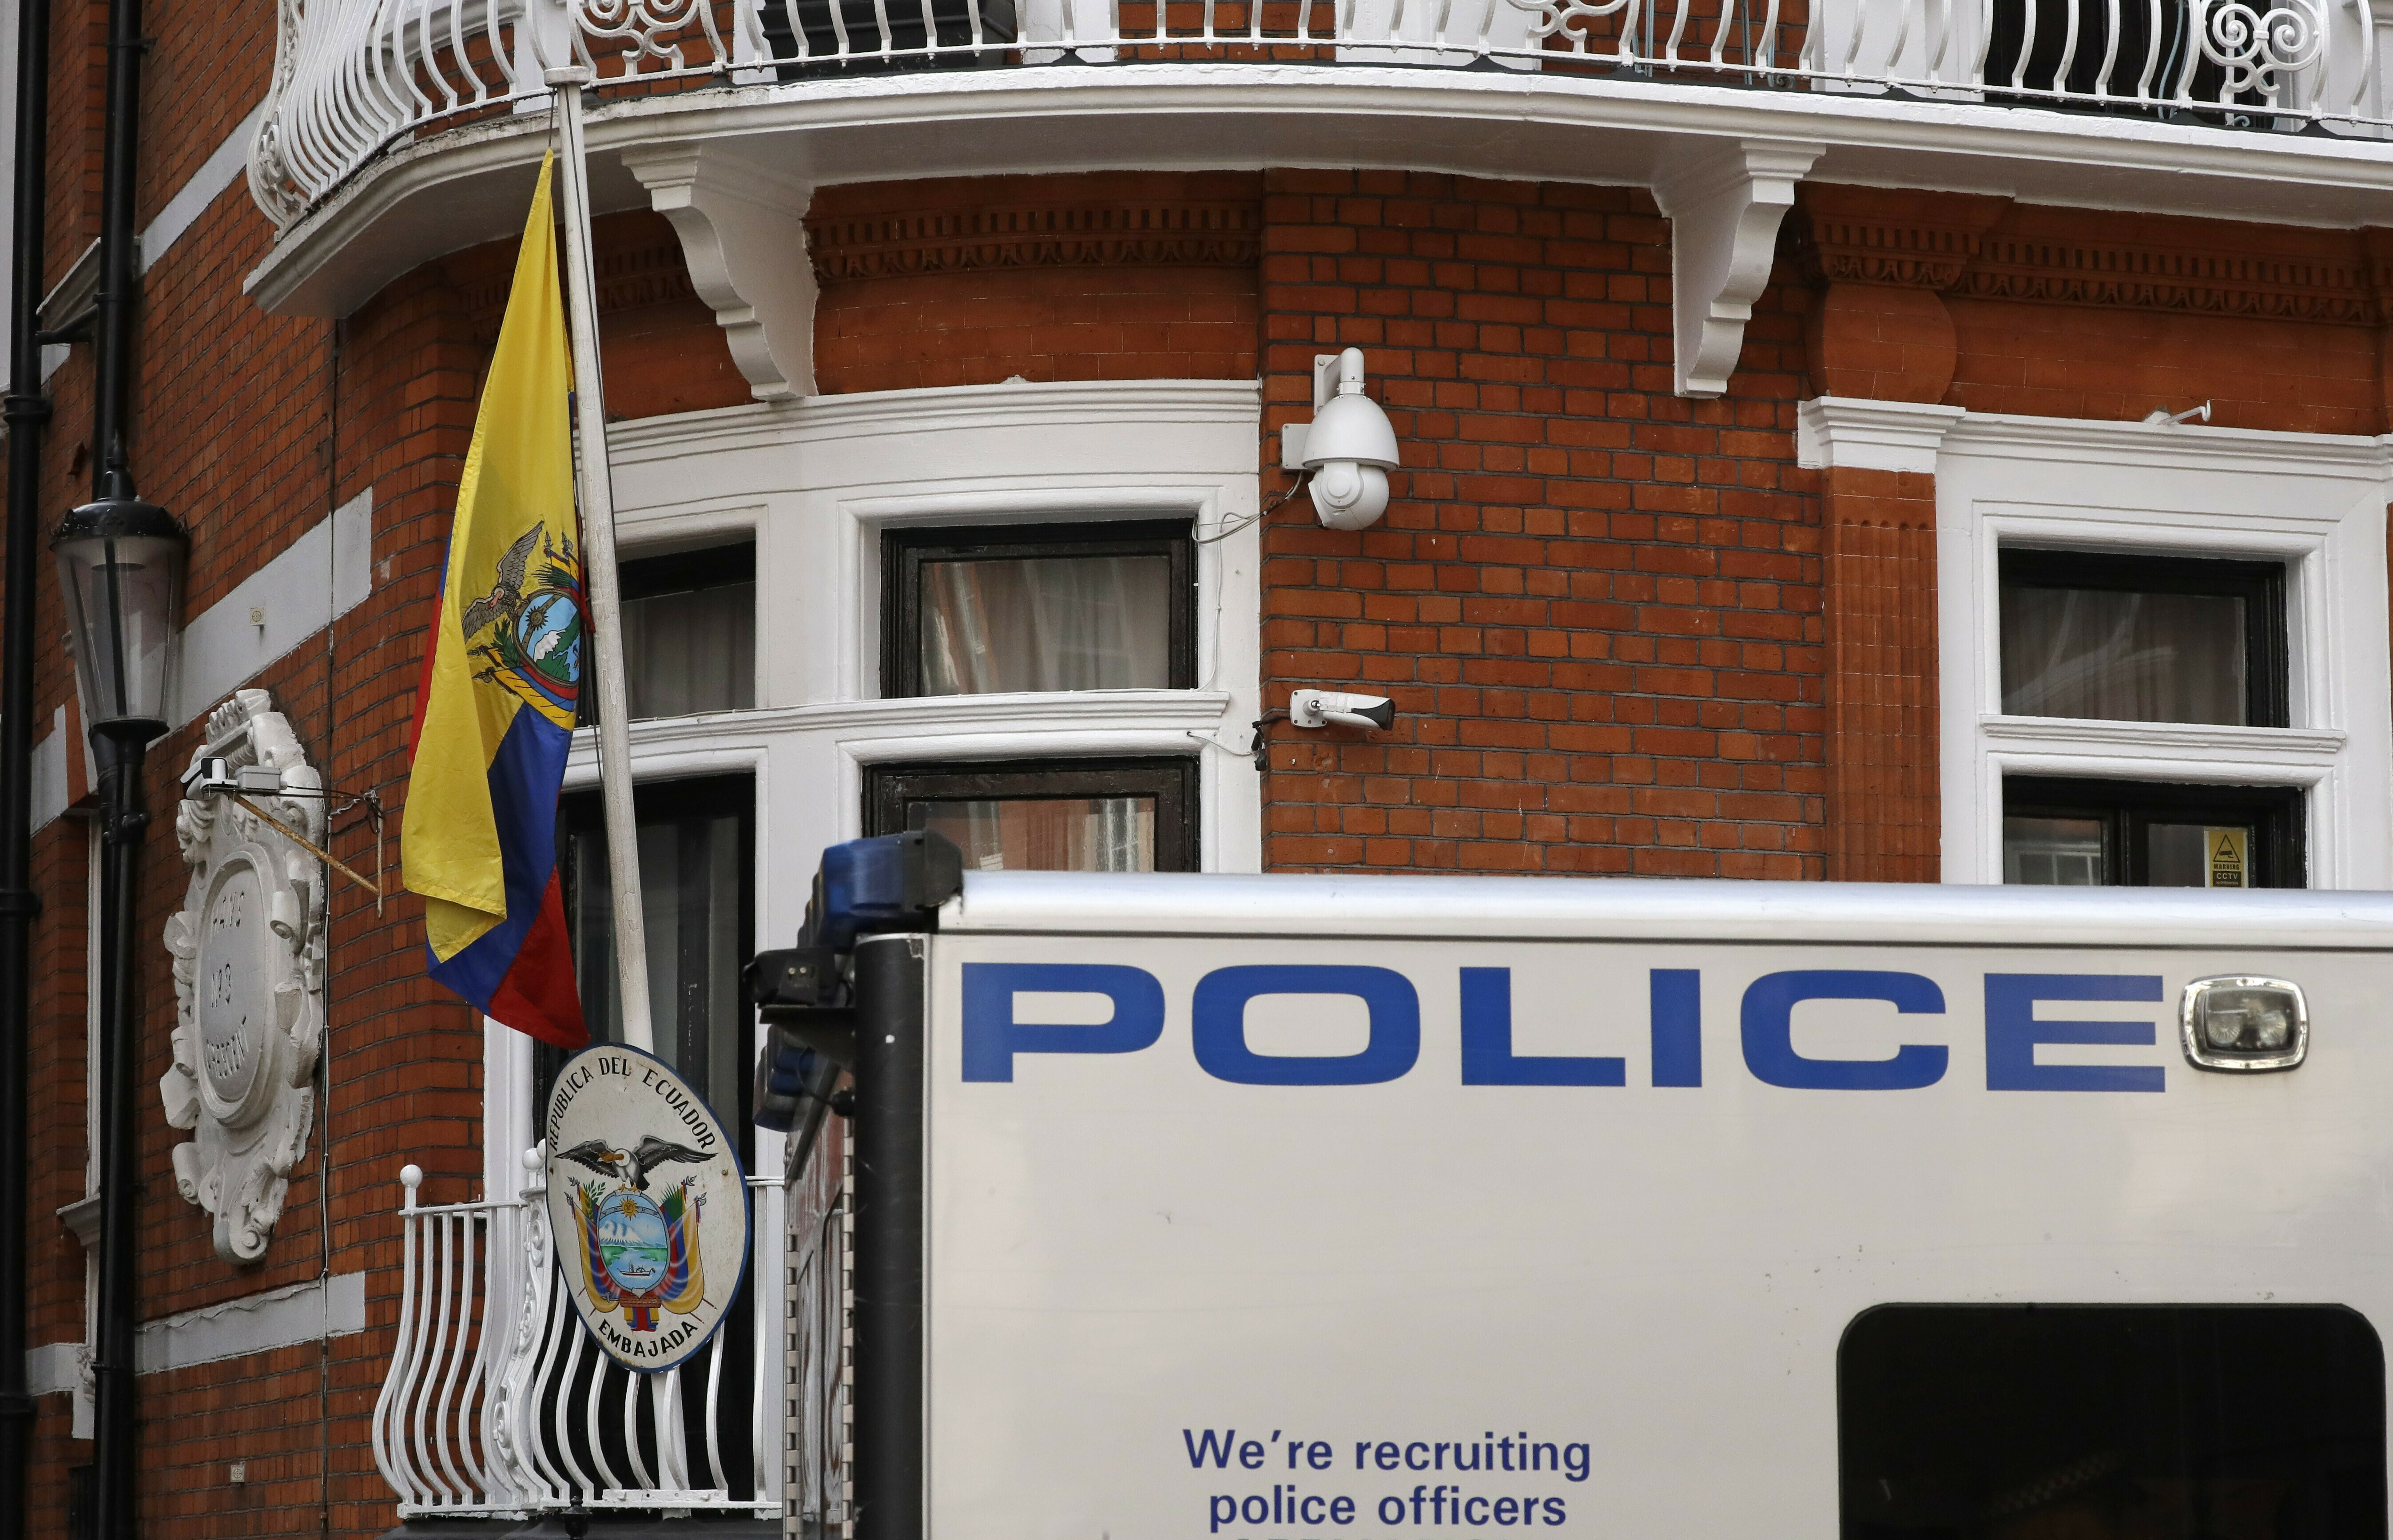 Will Julian Assange be extradited to the United States? - The